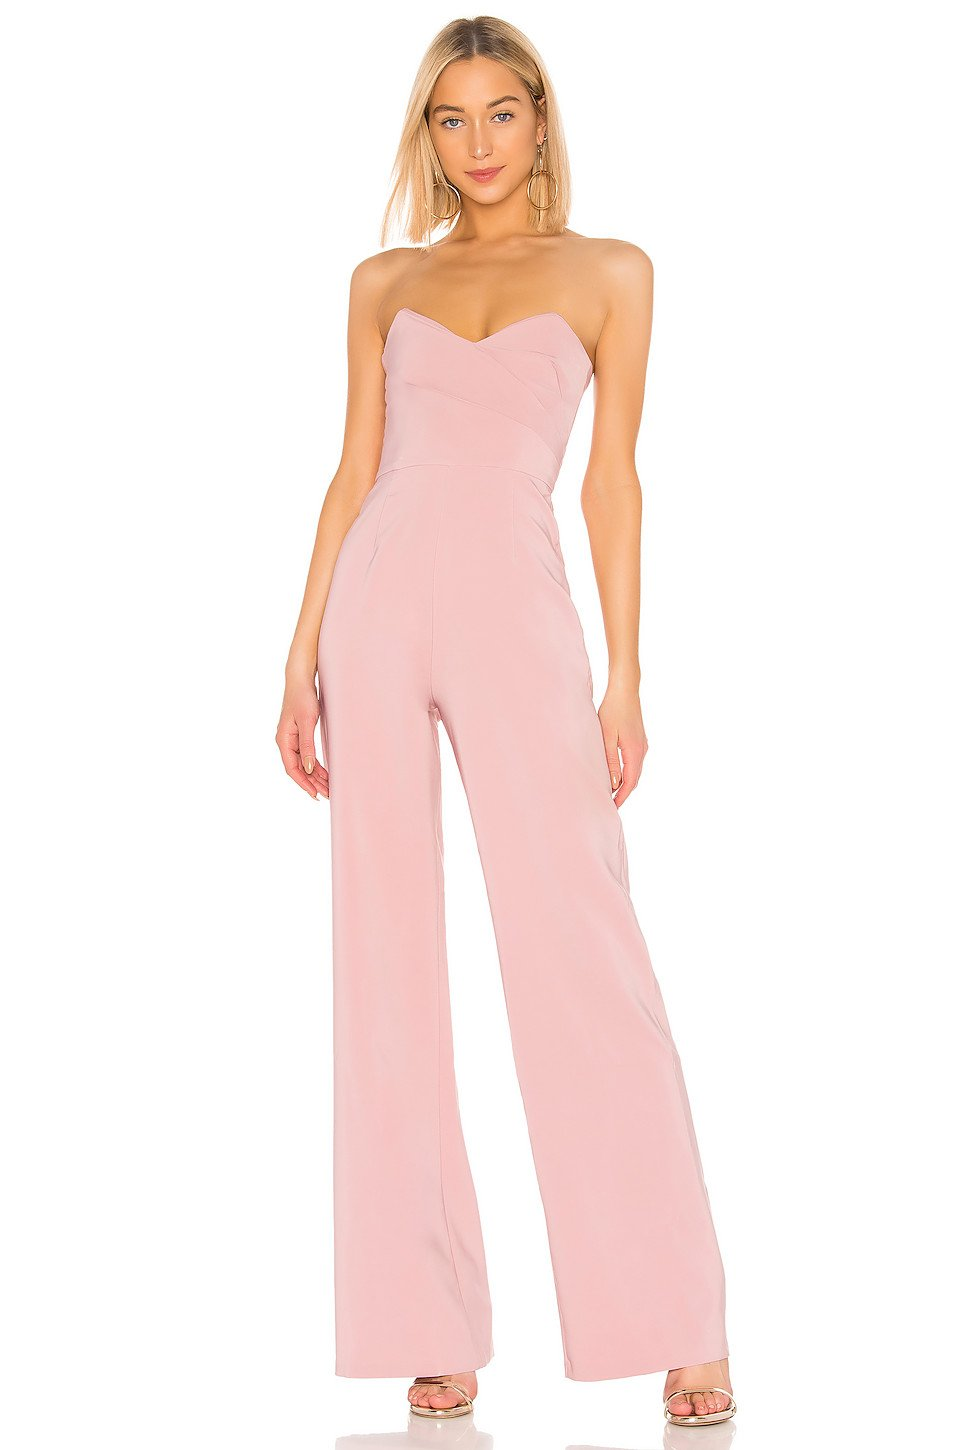 Bisous Jumpsuit in Dusty Pink